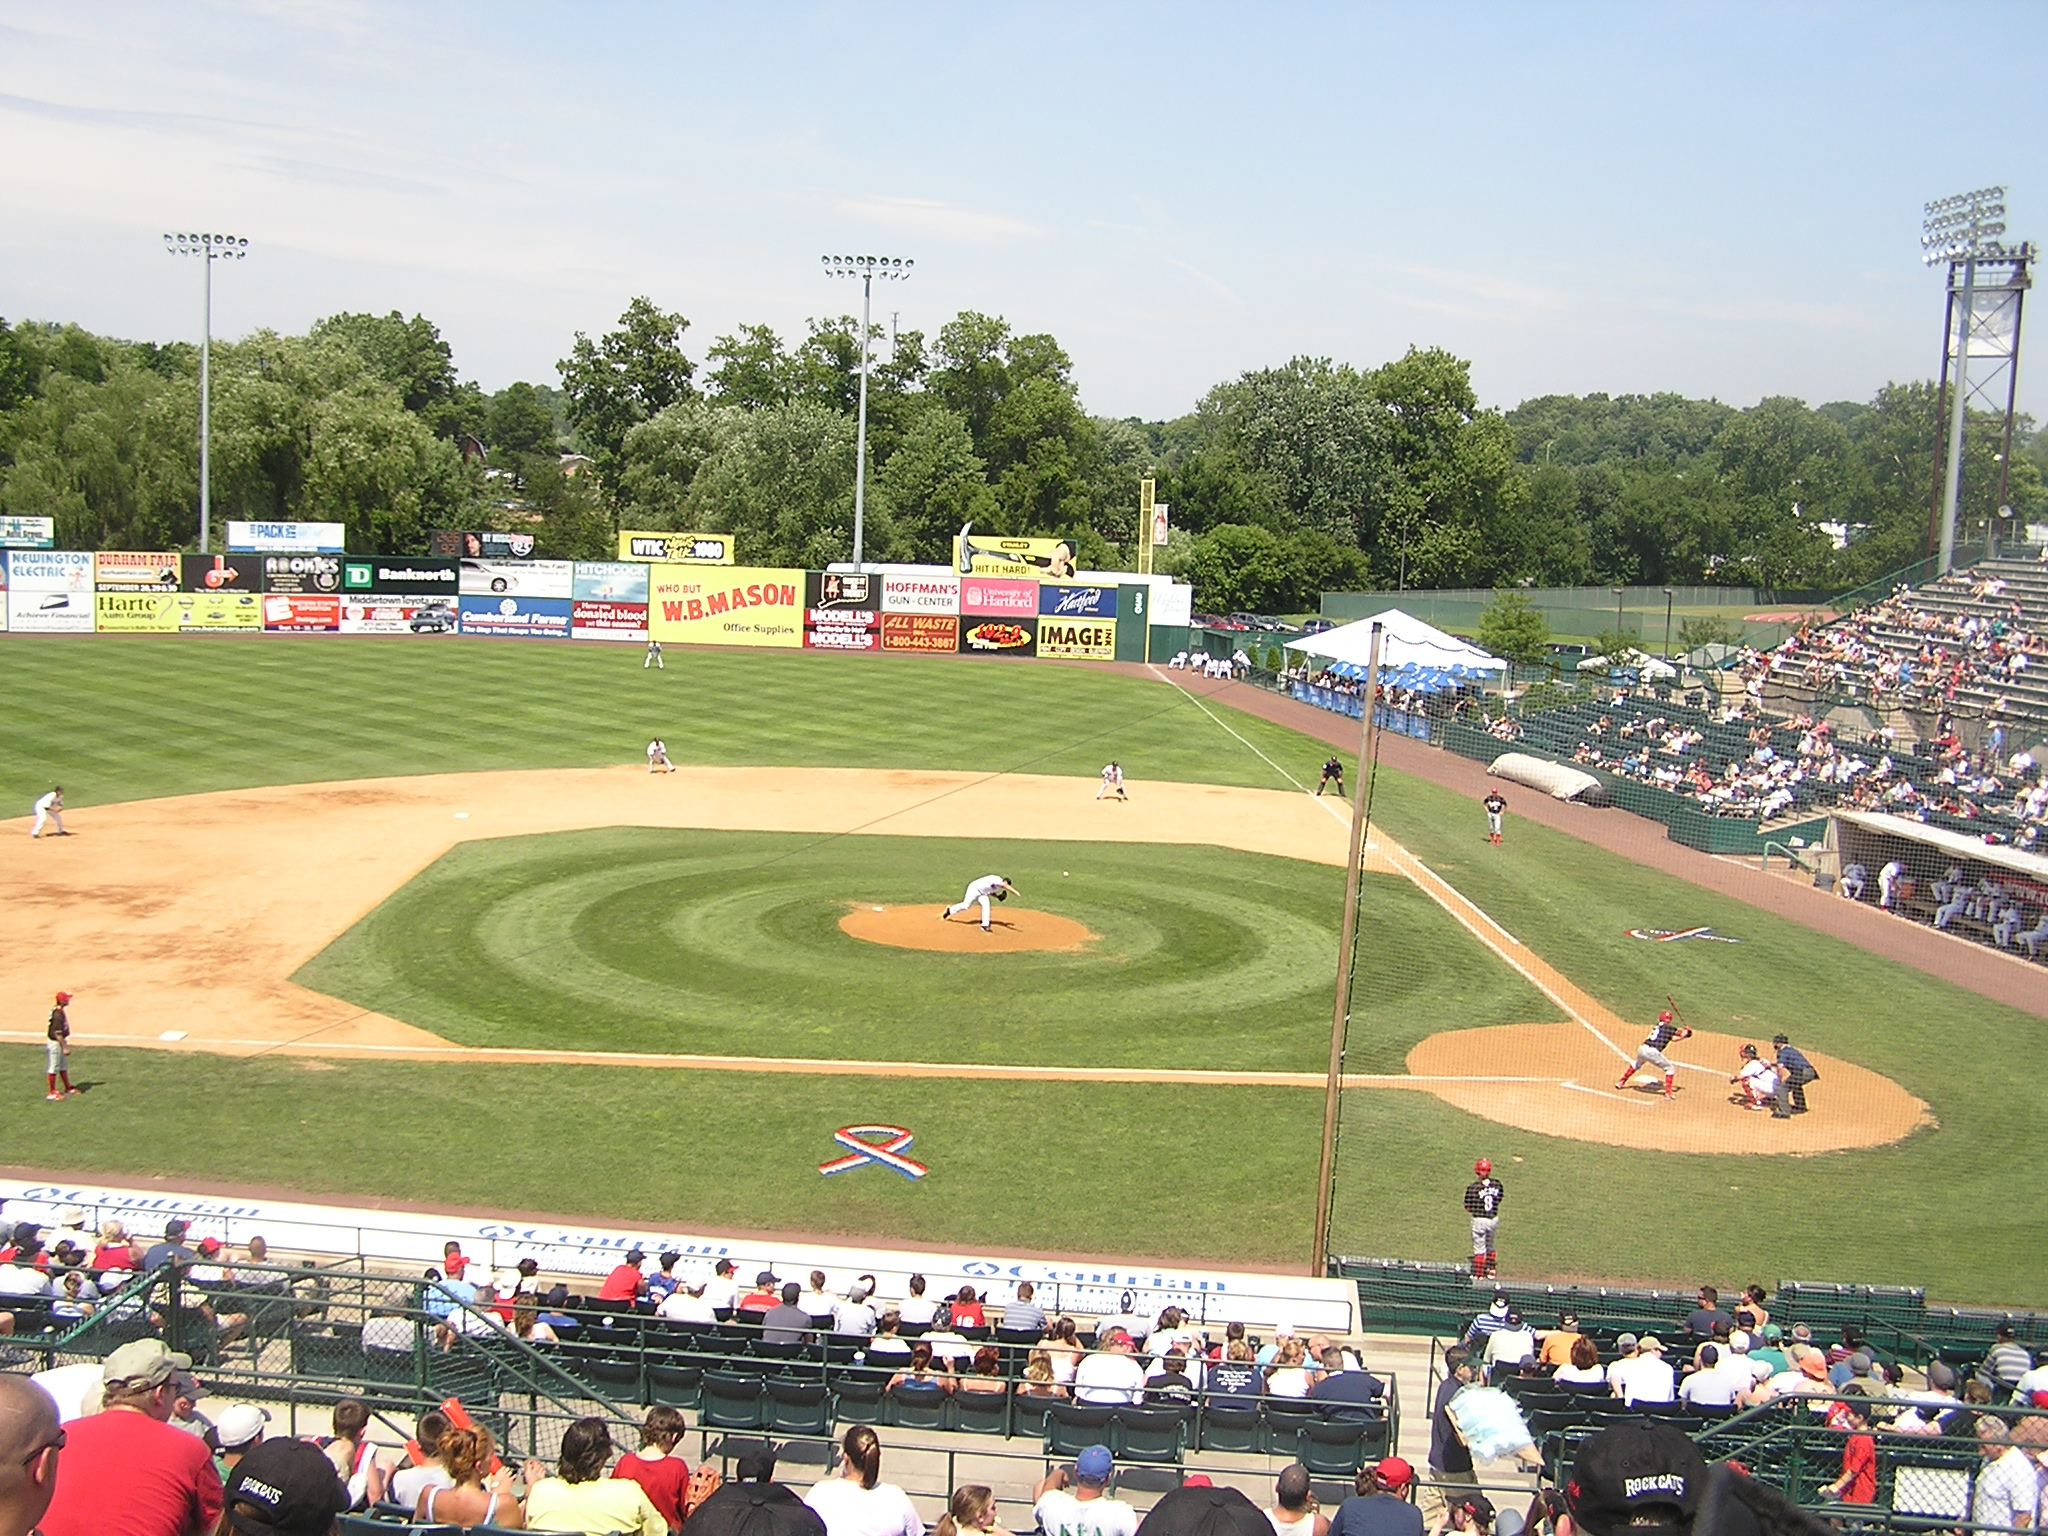 A hot summer day in New Britain, Ct. - NB Stadium